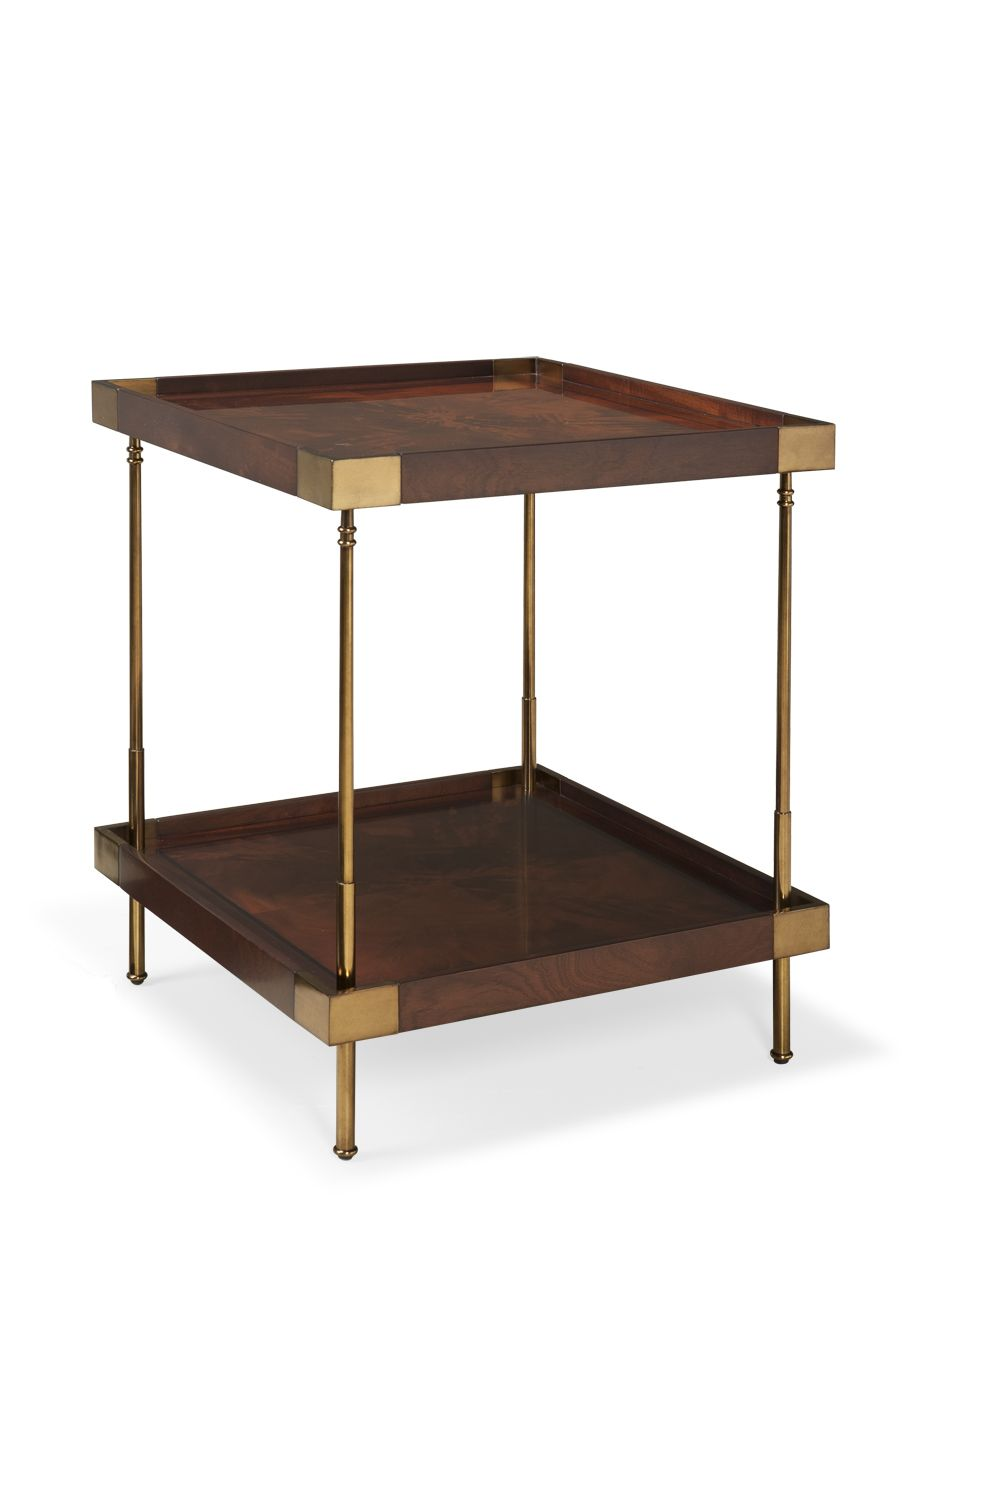 edward ferrell lewis mittman beauty tables living wood accent table modern coffee target english side home goods sofa hanging wall clock pod chair bunnings types furniture